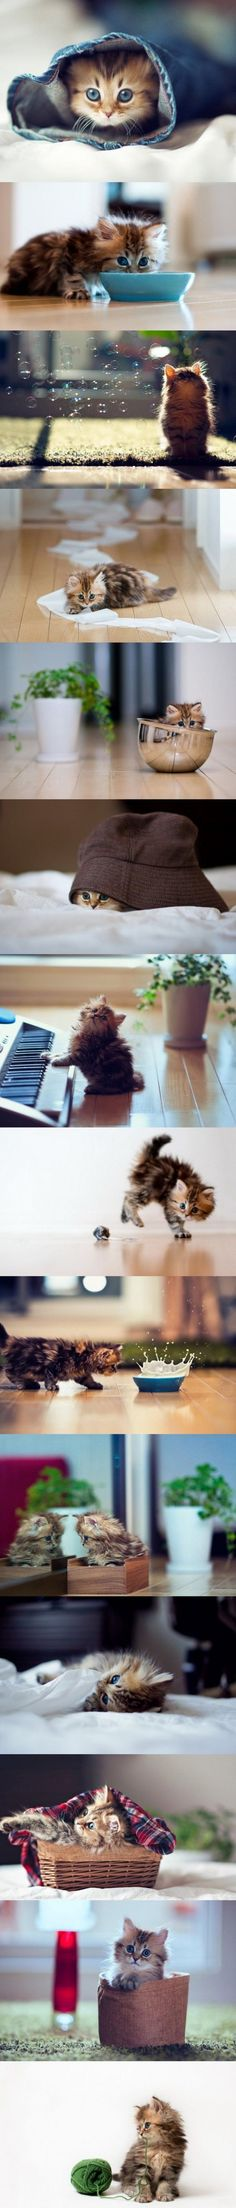 Looks just like my little Fluffy! So sweet.